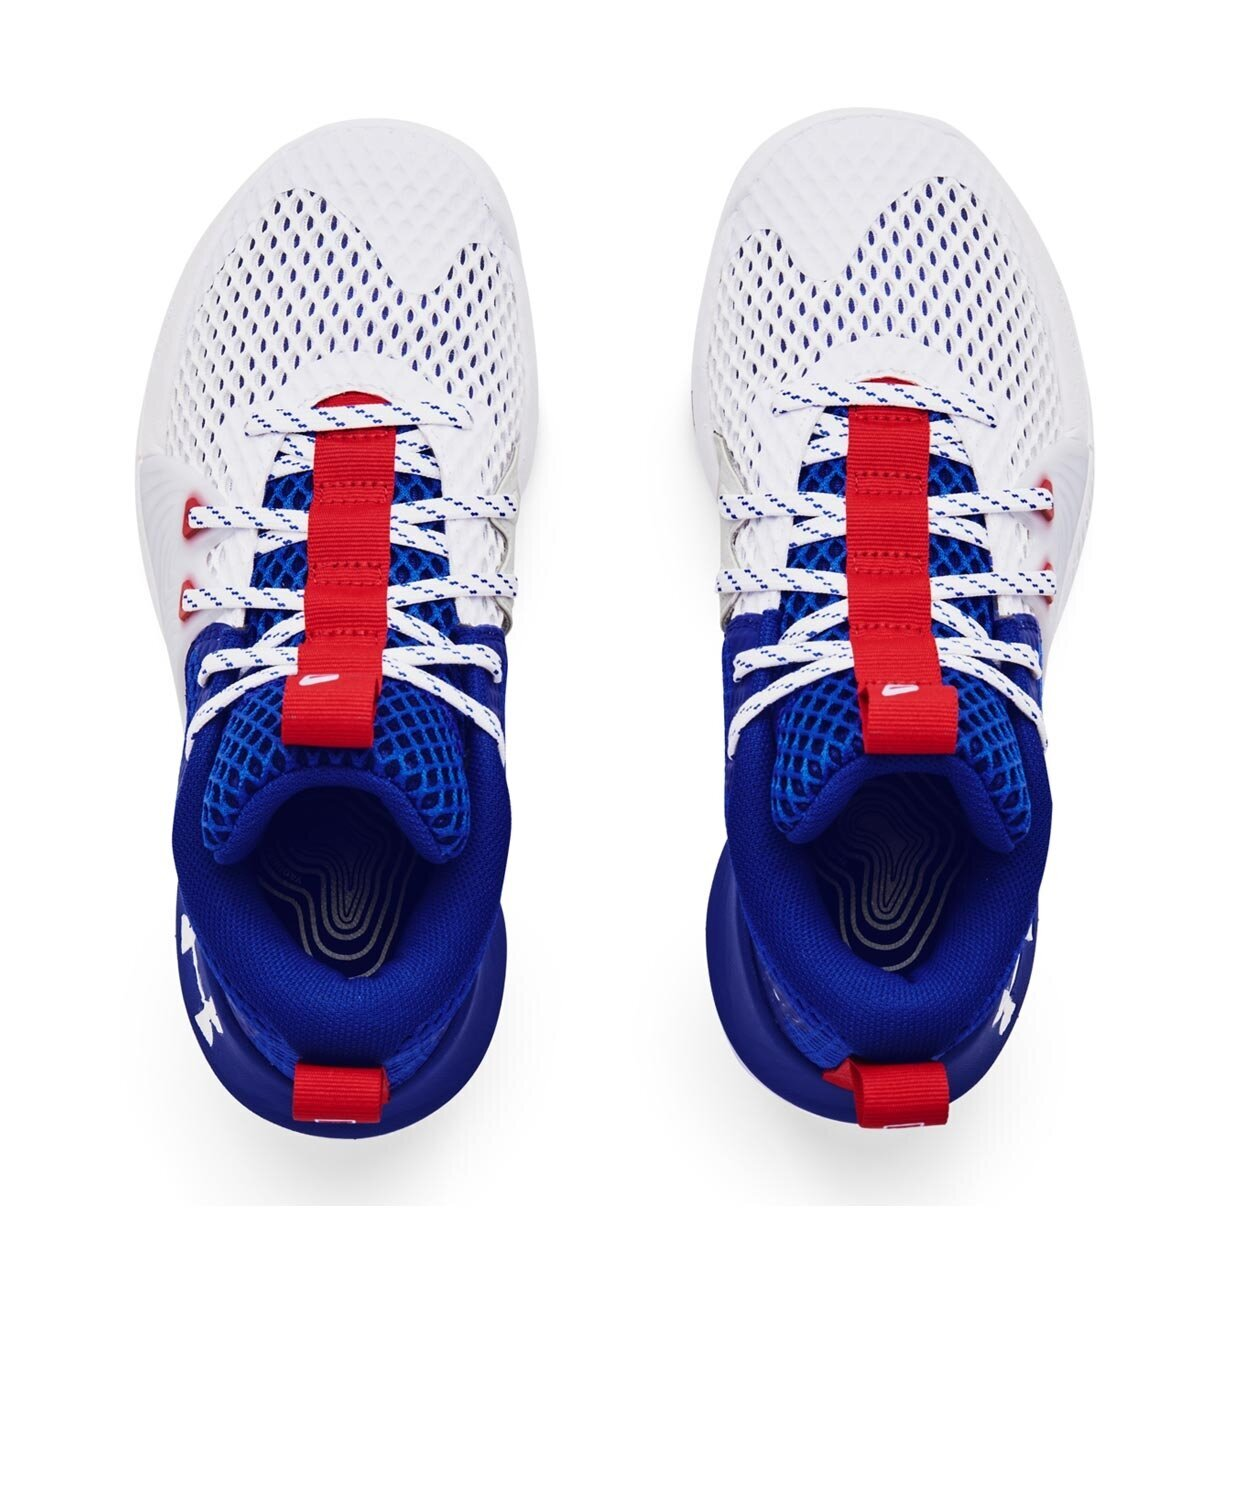 Under Armour Gs Embiid 1